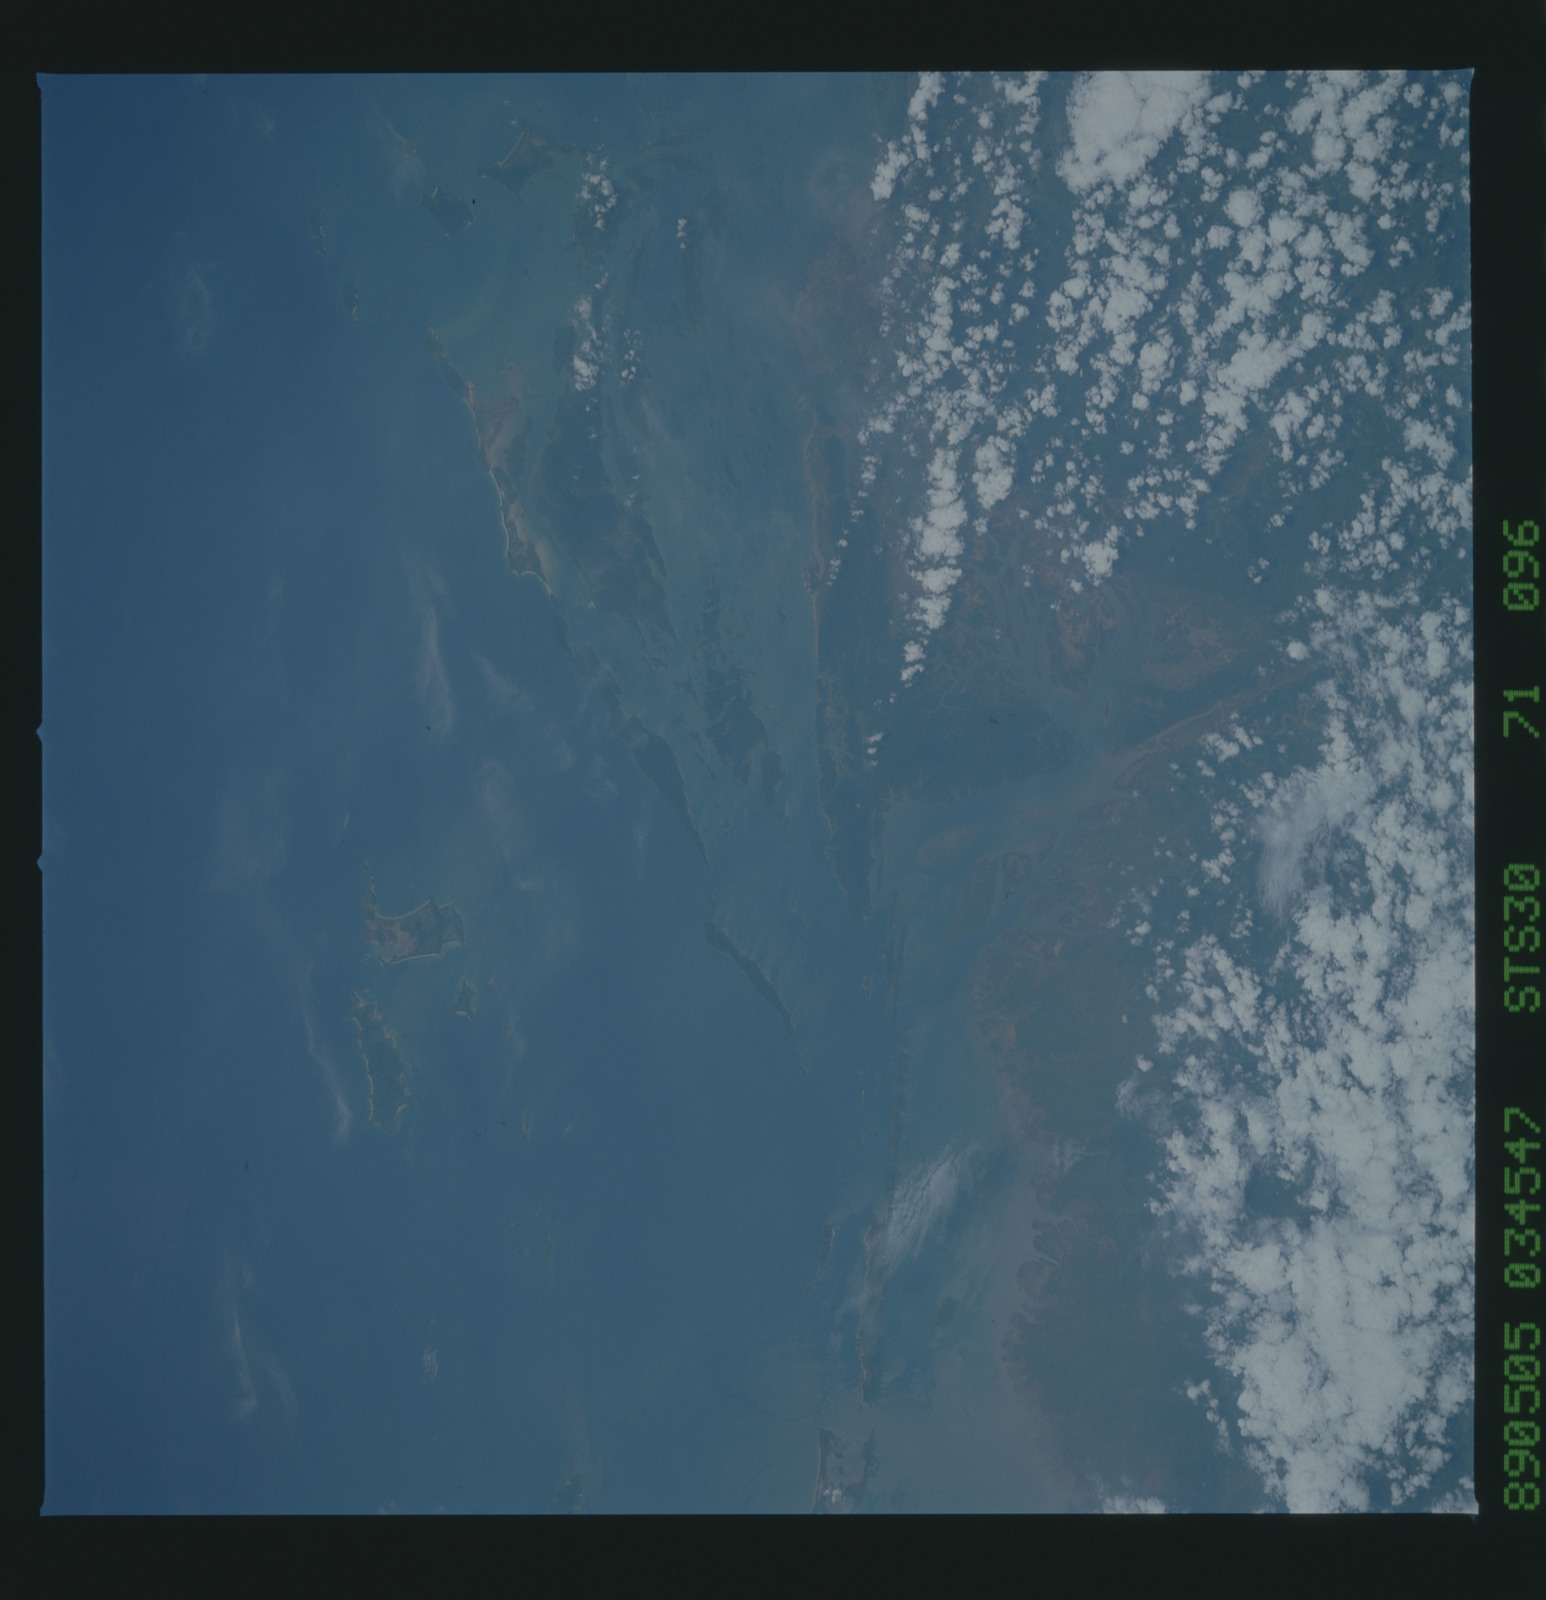 S30-71-096 - STS-030 - STS-30 earth observations